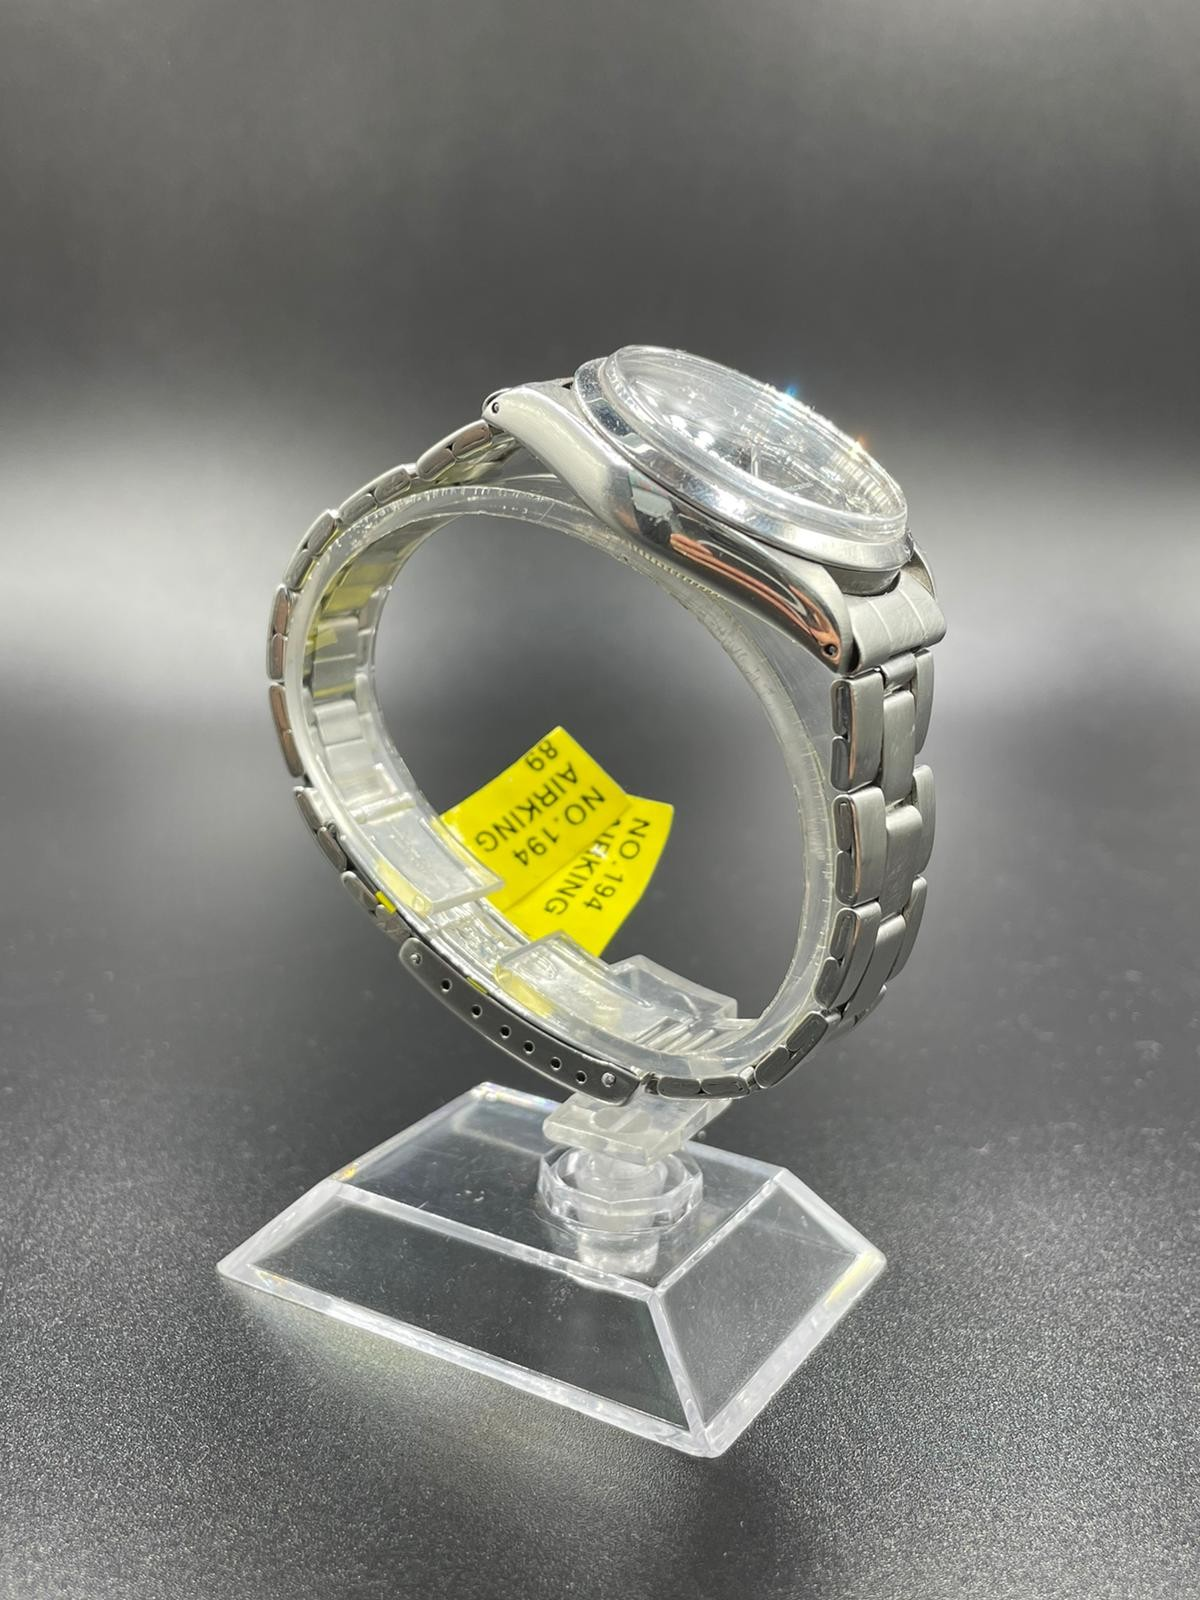 Rolex Air-king Stainless Steel Diamond Dot Dial black face 1998 - Image 2 of 3